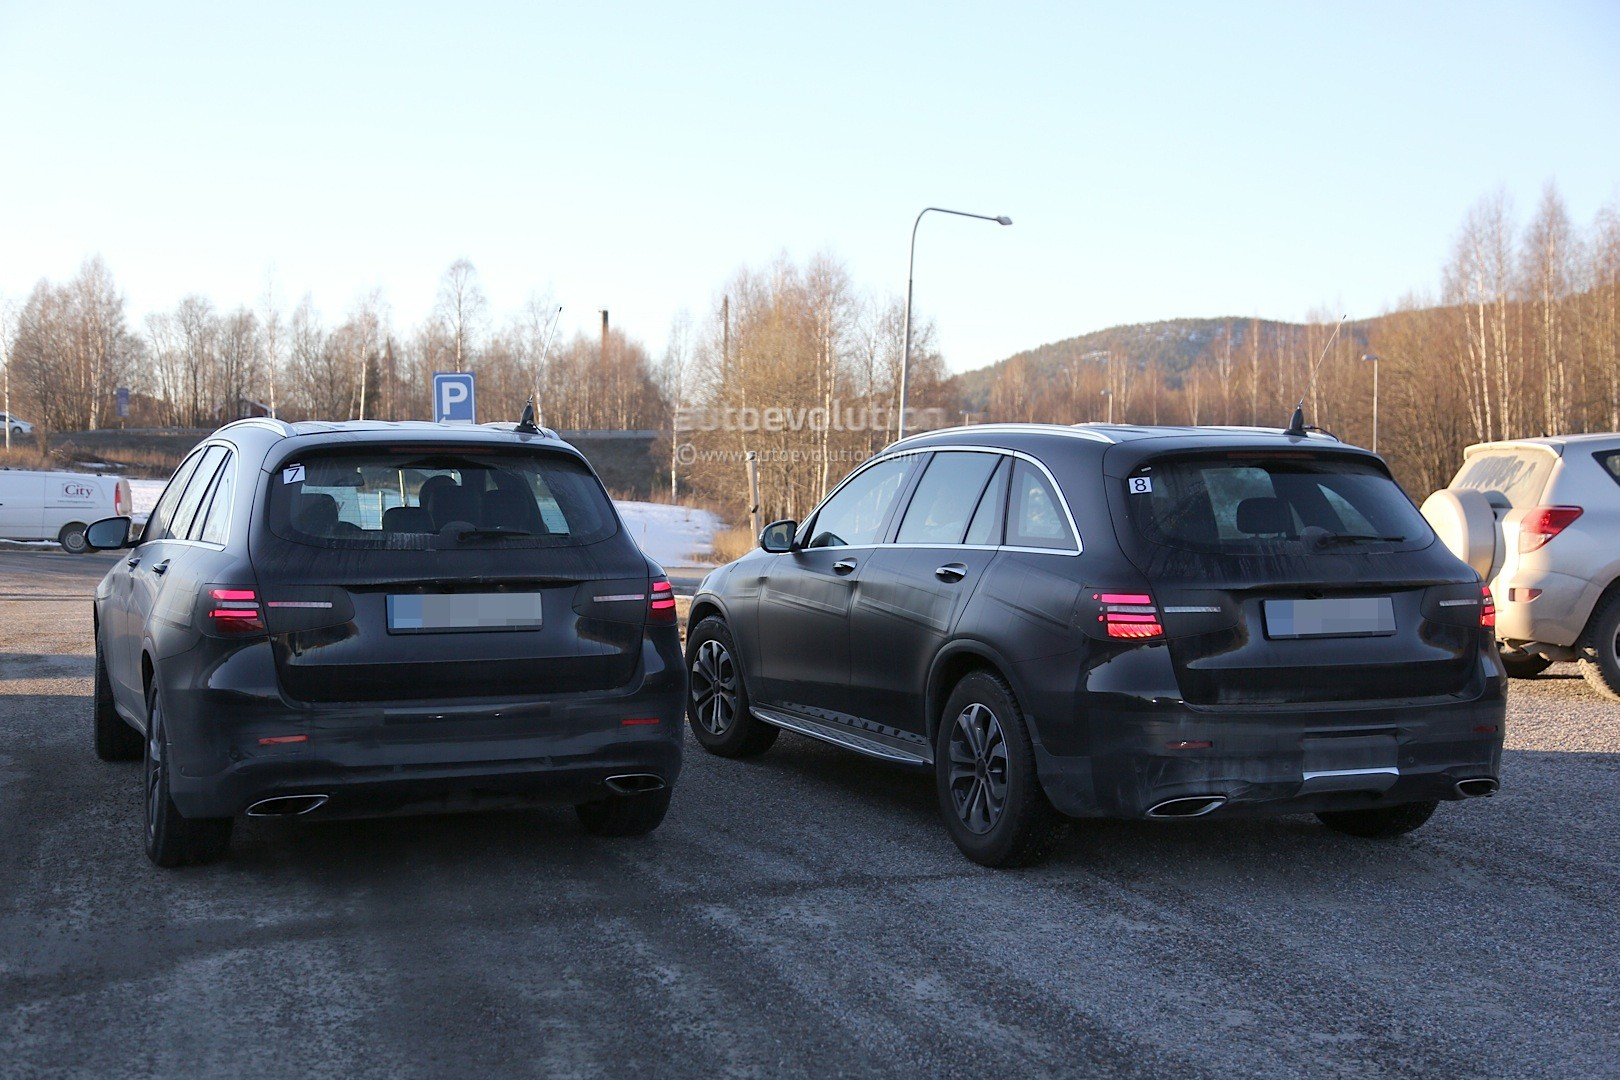 2016 mercedes glc spy photos show nearly undisguised pre production prototypes autoevolution - 2016 Mercedes Glc